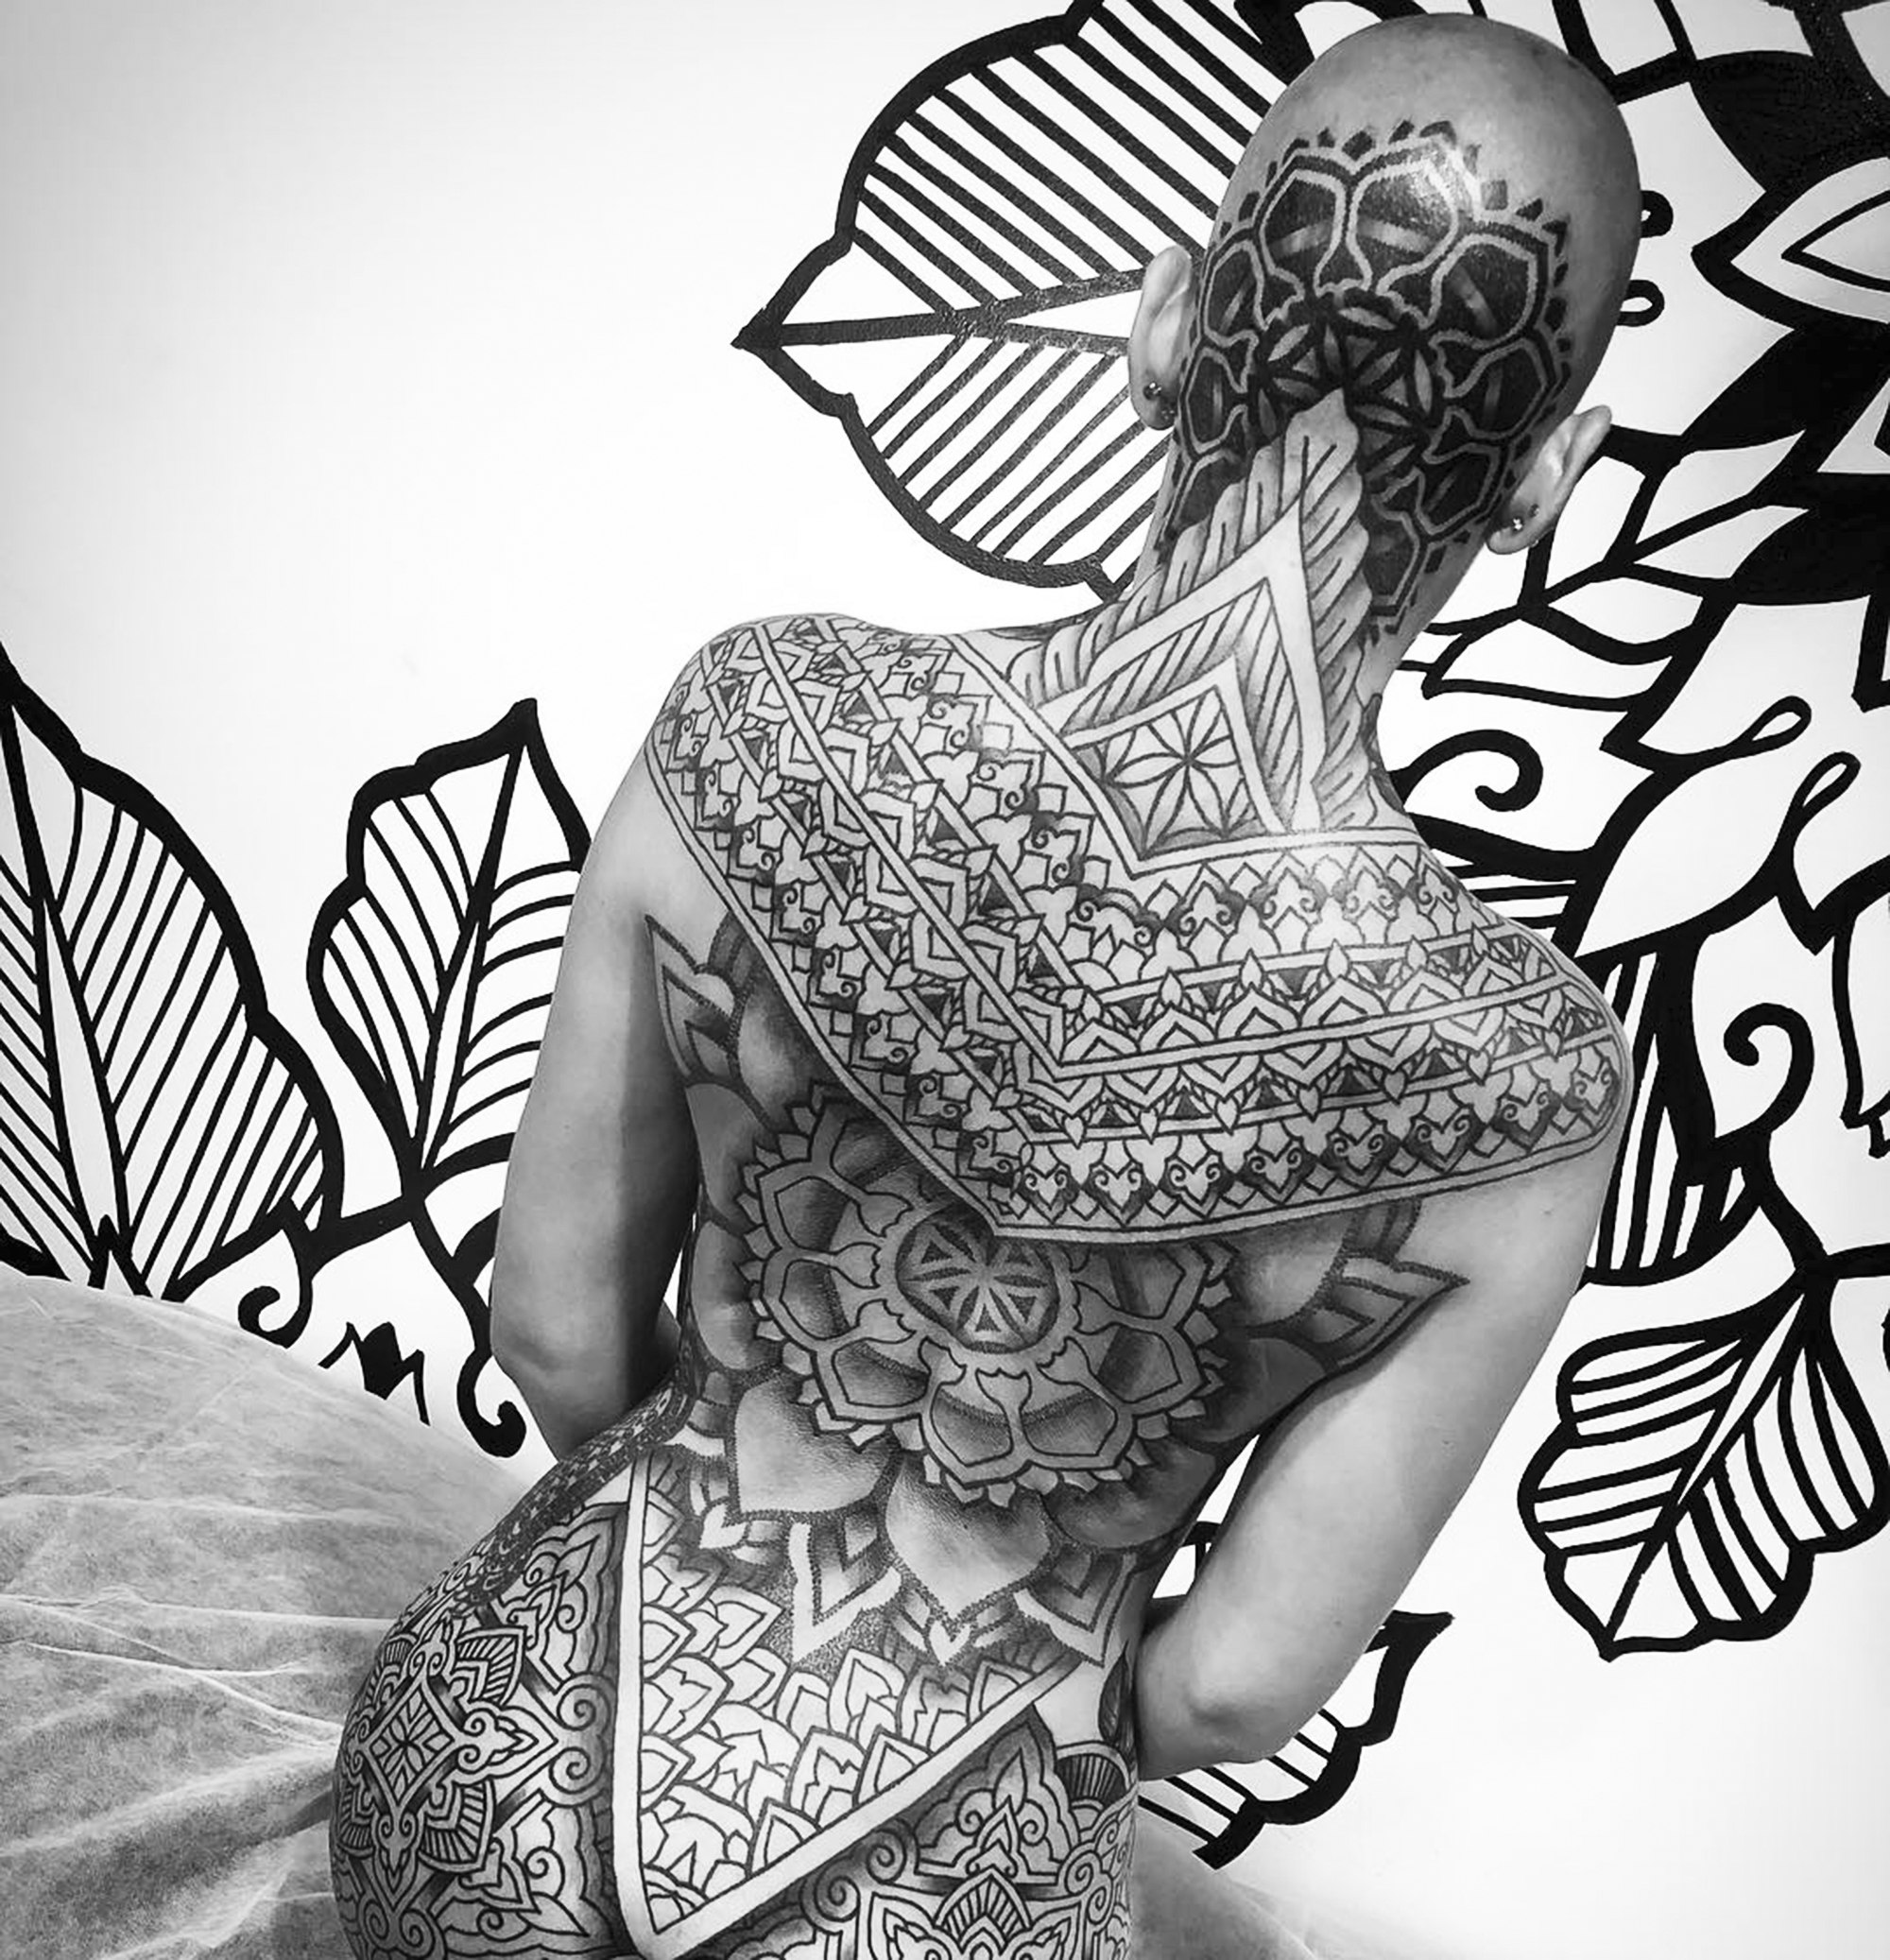 Transcending Patterns: Tattoos by Keegan Sweeney